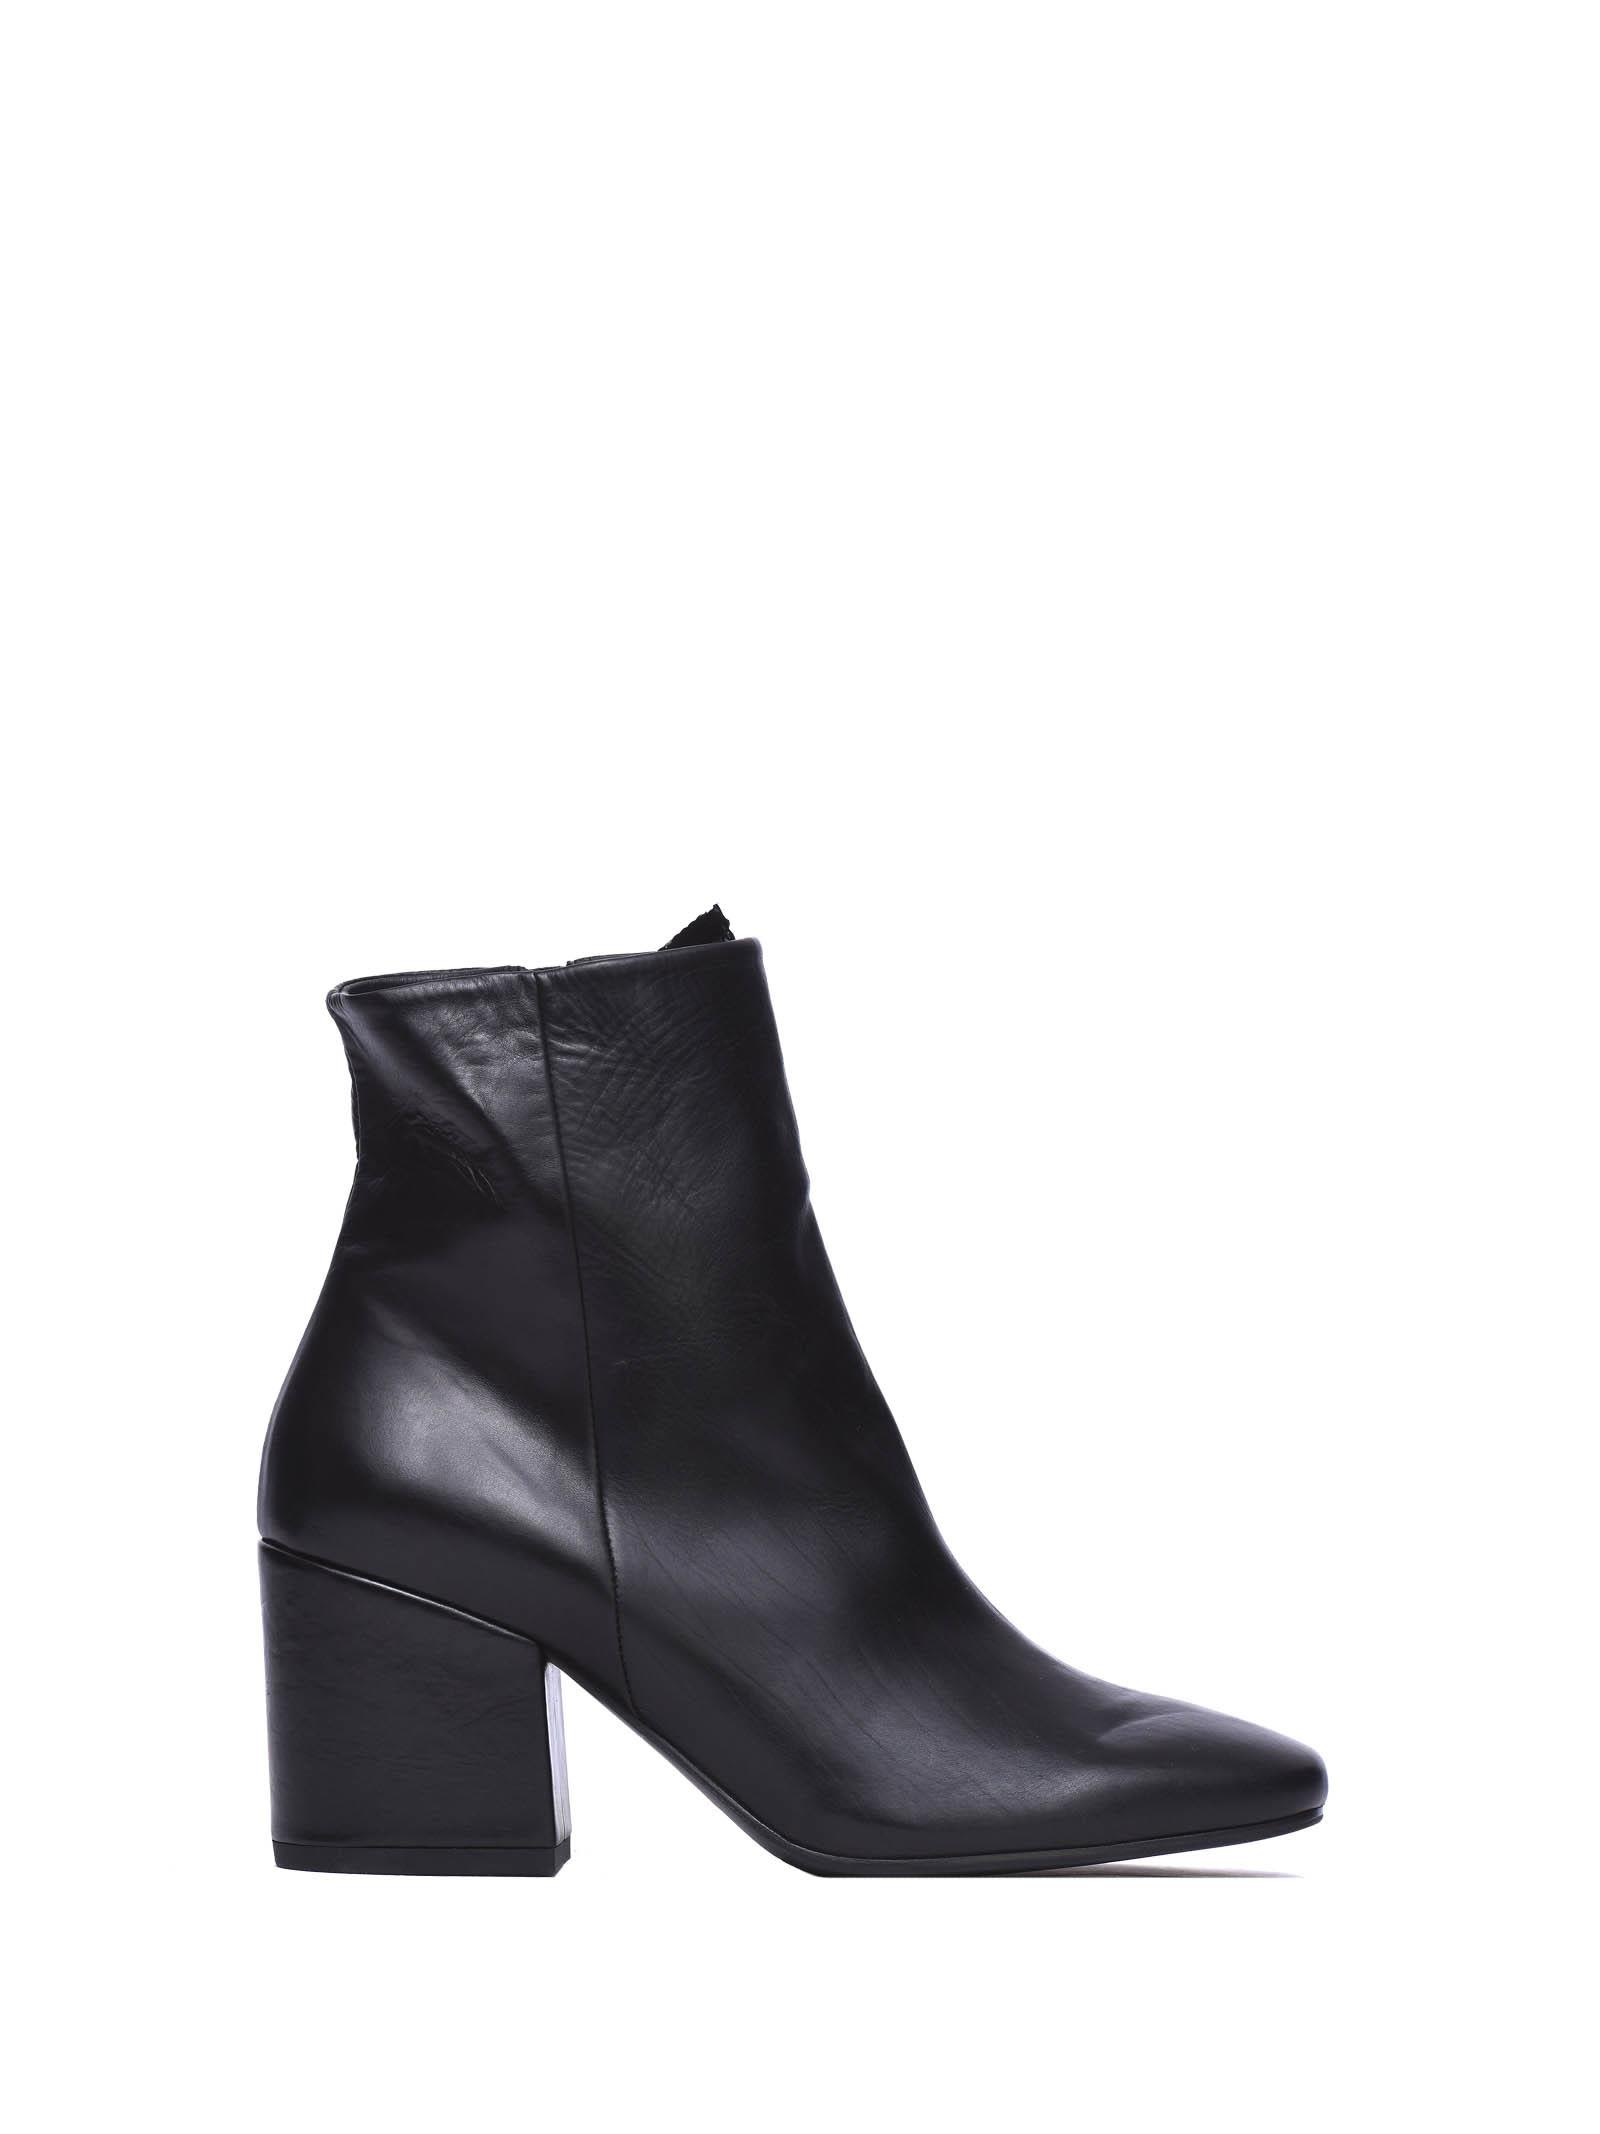 Vic Matié Black Leather Square-toed Ankle Boots